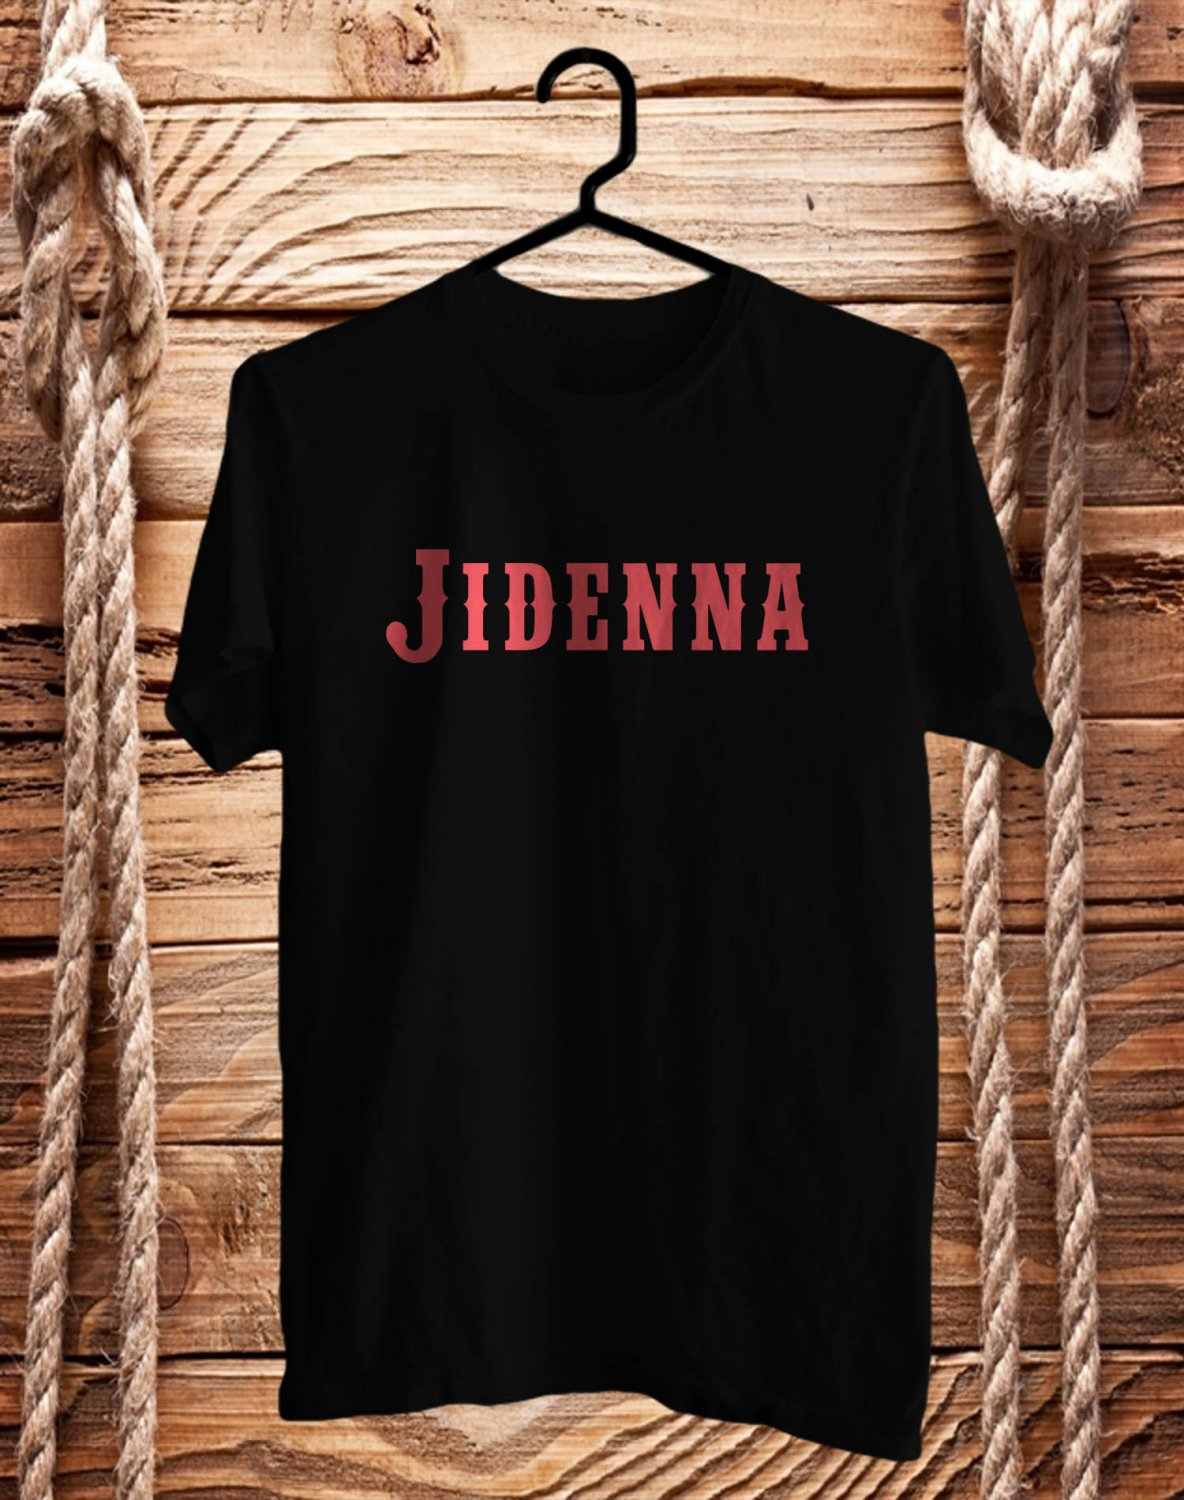 Jidenna logo Black Tee's Front Side by Complexart